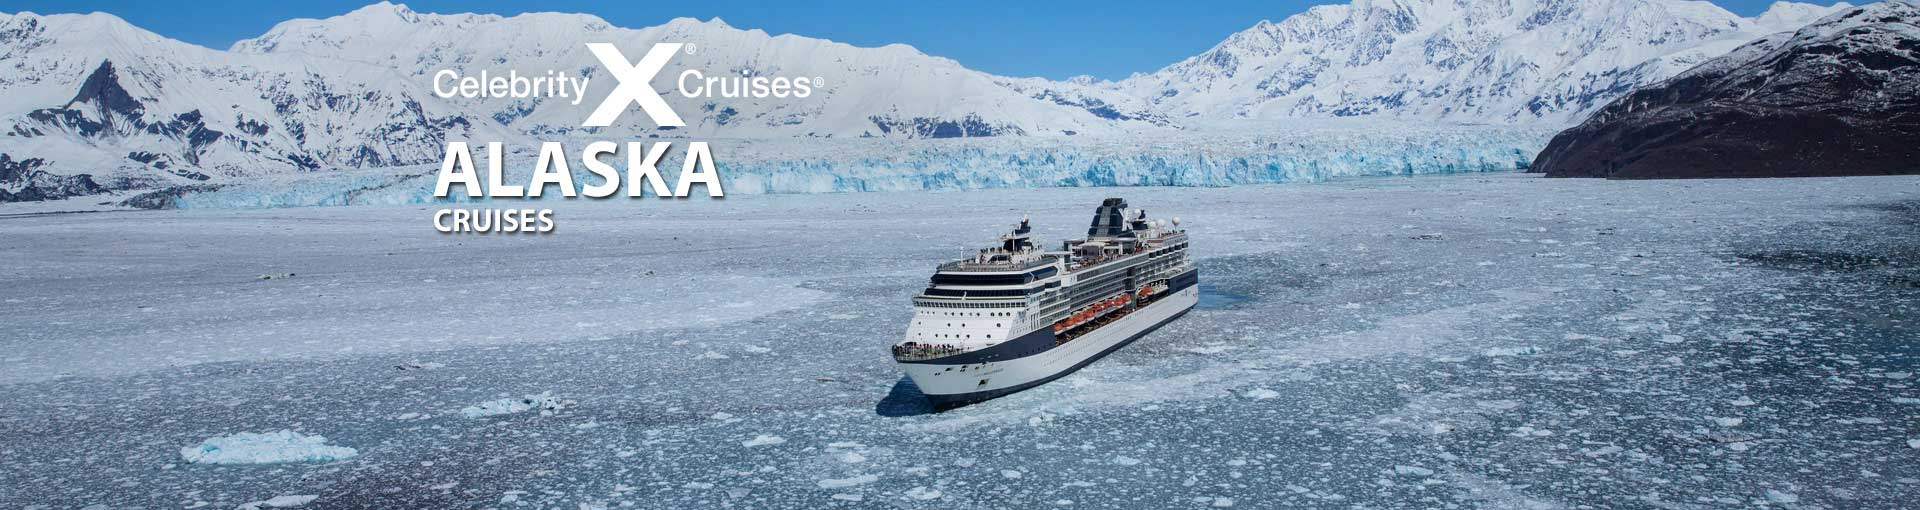 Celebrity Alaska Cruises 2018 And 2019 Alaskan Celebrity Cruises The Cruise Web